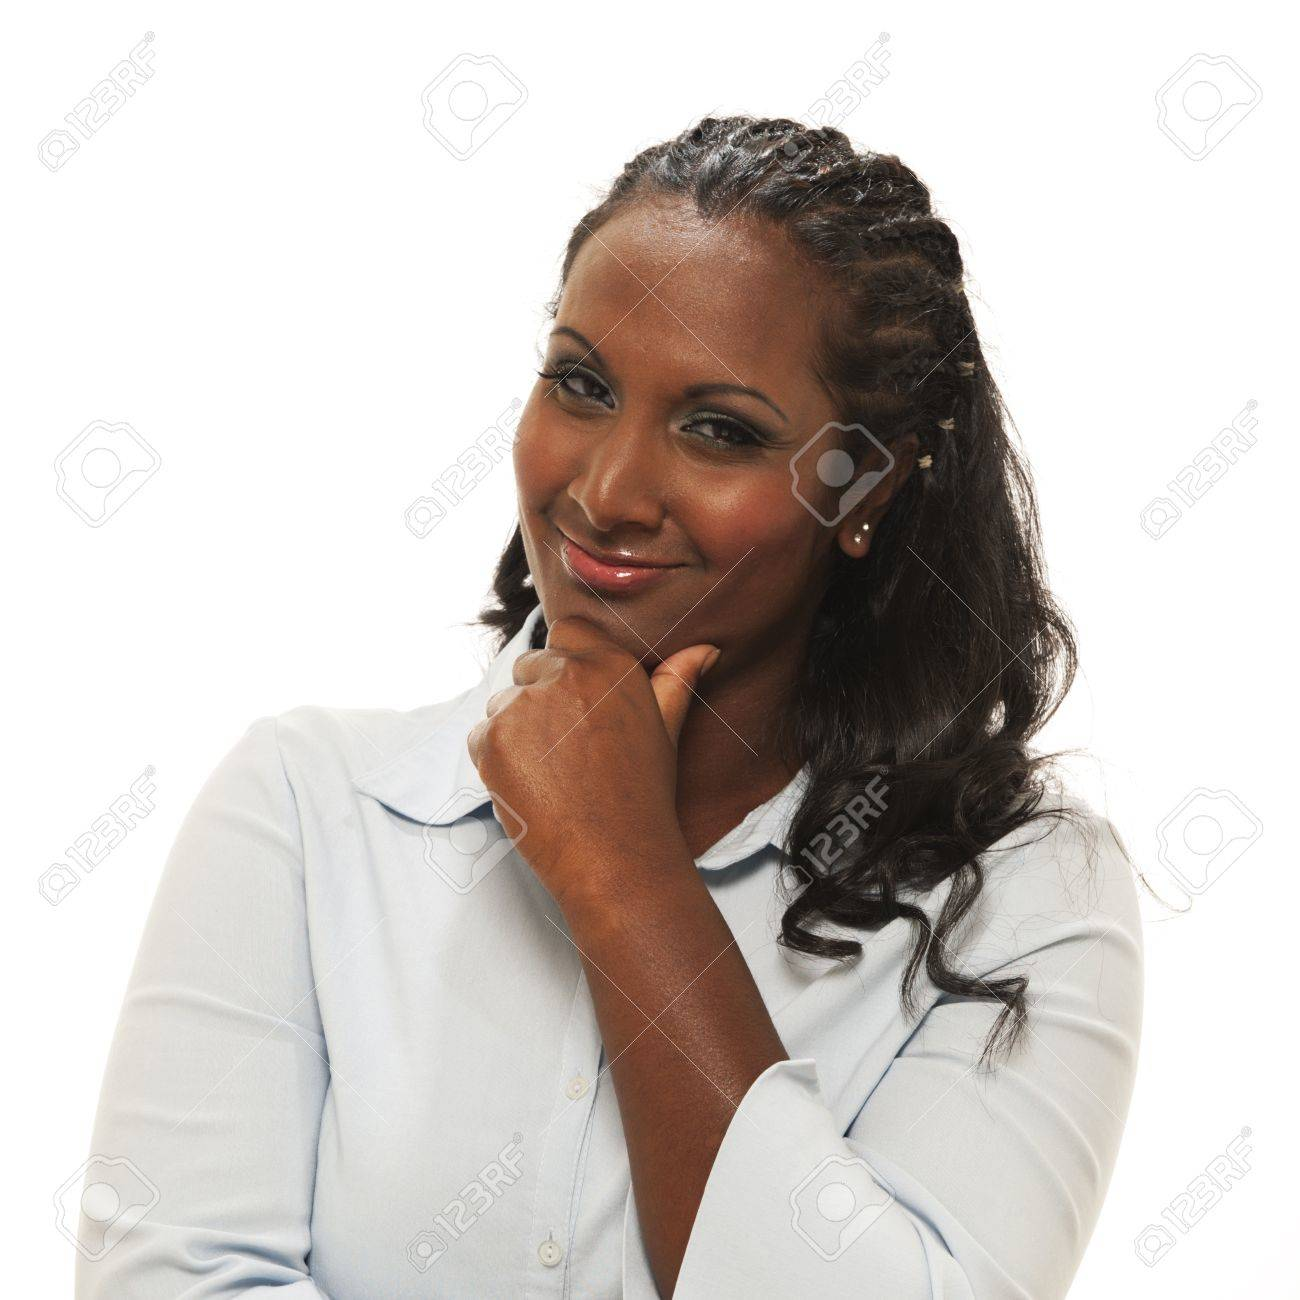 Woman thinking whith chin resting in hand Stock Photo - 10830991